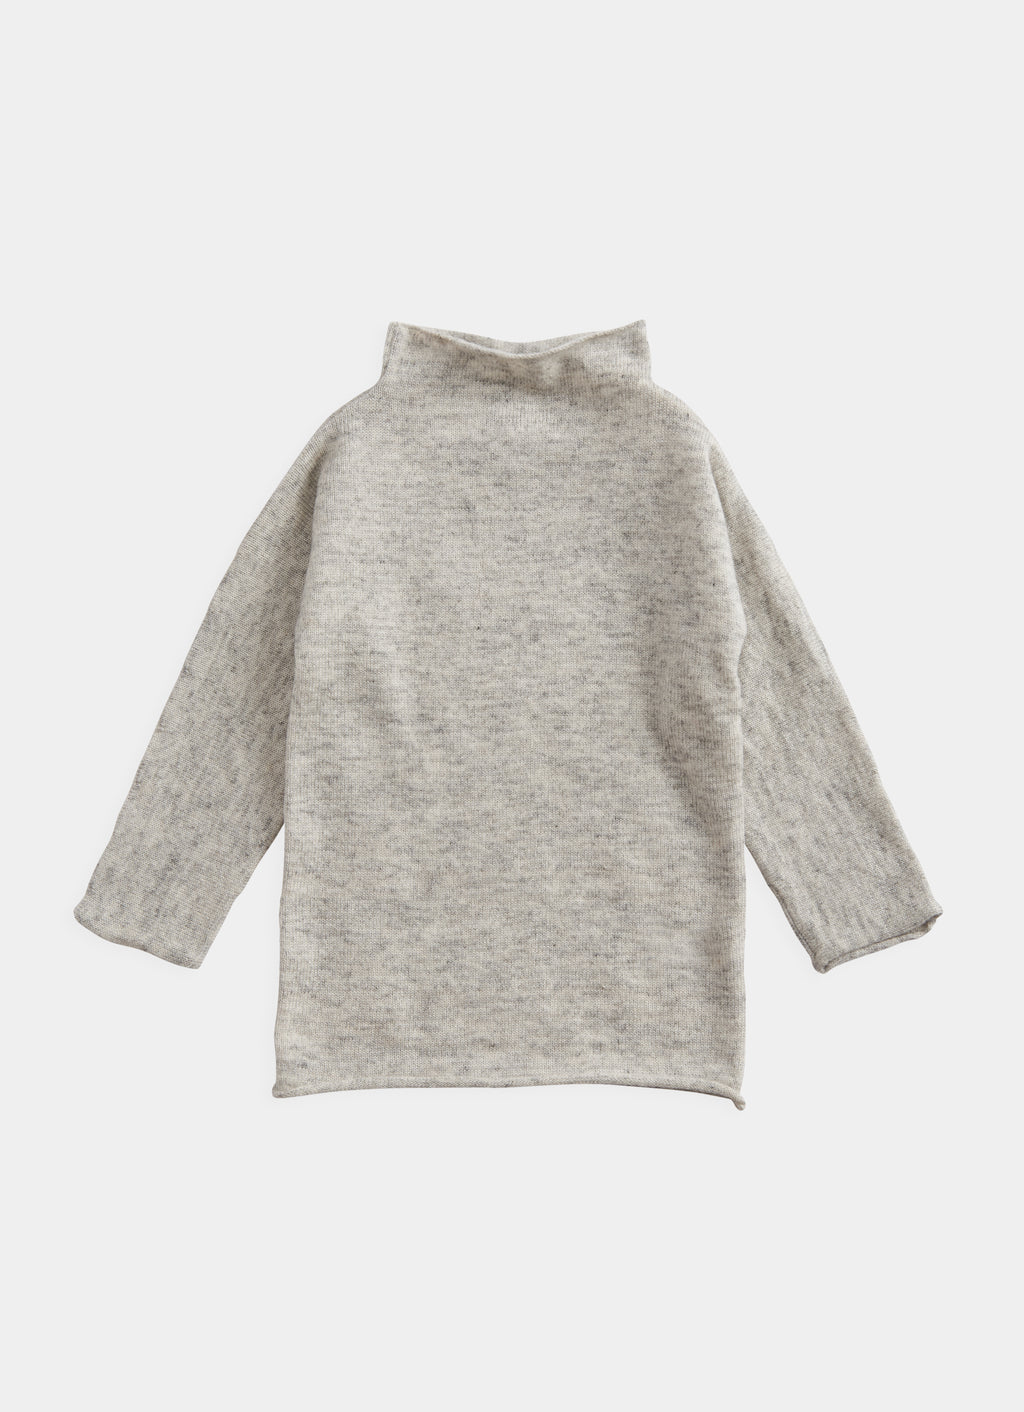 Belle Enfant Funnel Dress - Silver Grey Marl